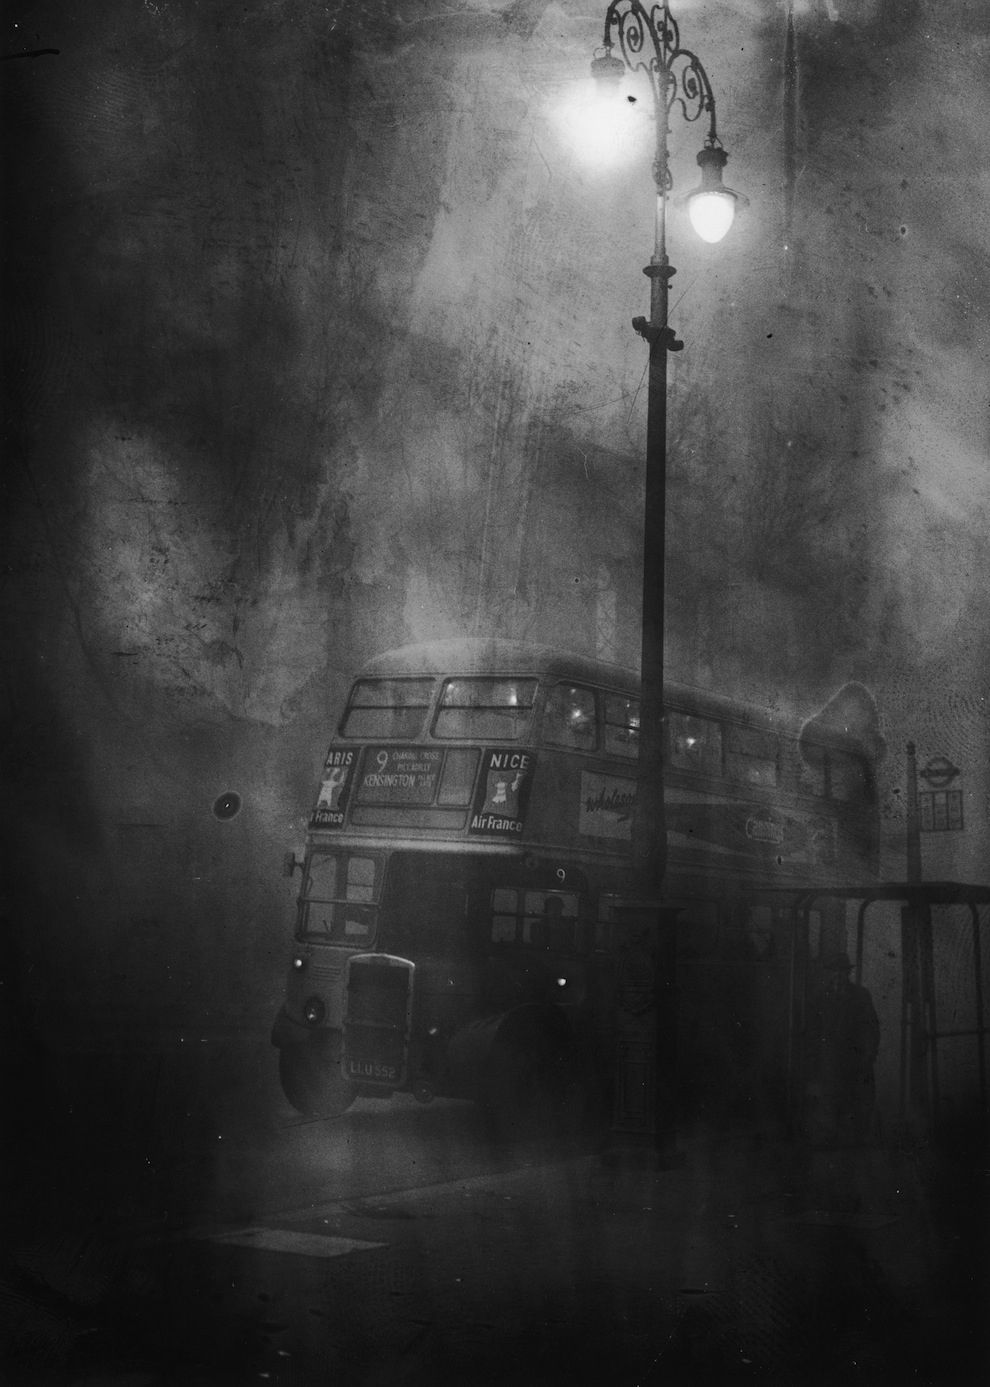 6 december 1952 fleet street these chilling images were taken during londons great smog of 52 for four days the city of london was blanketed by a